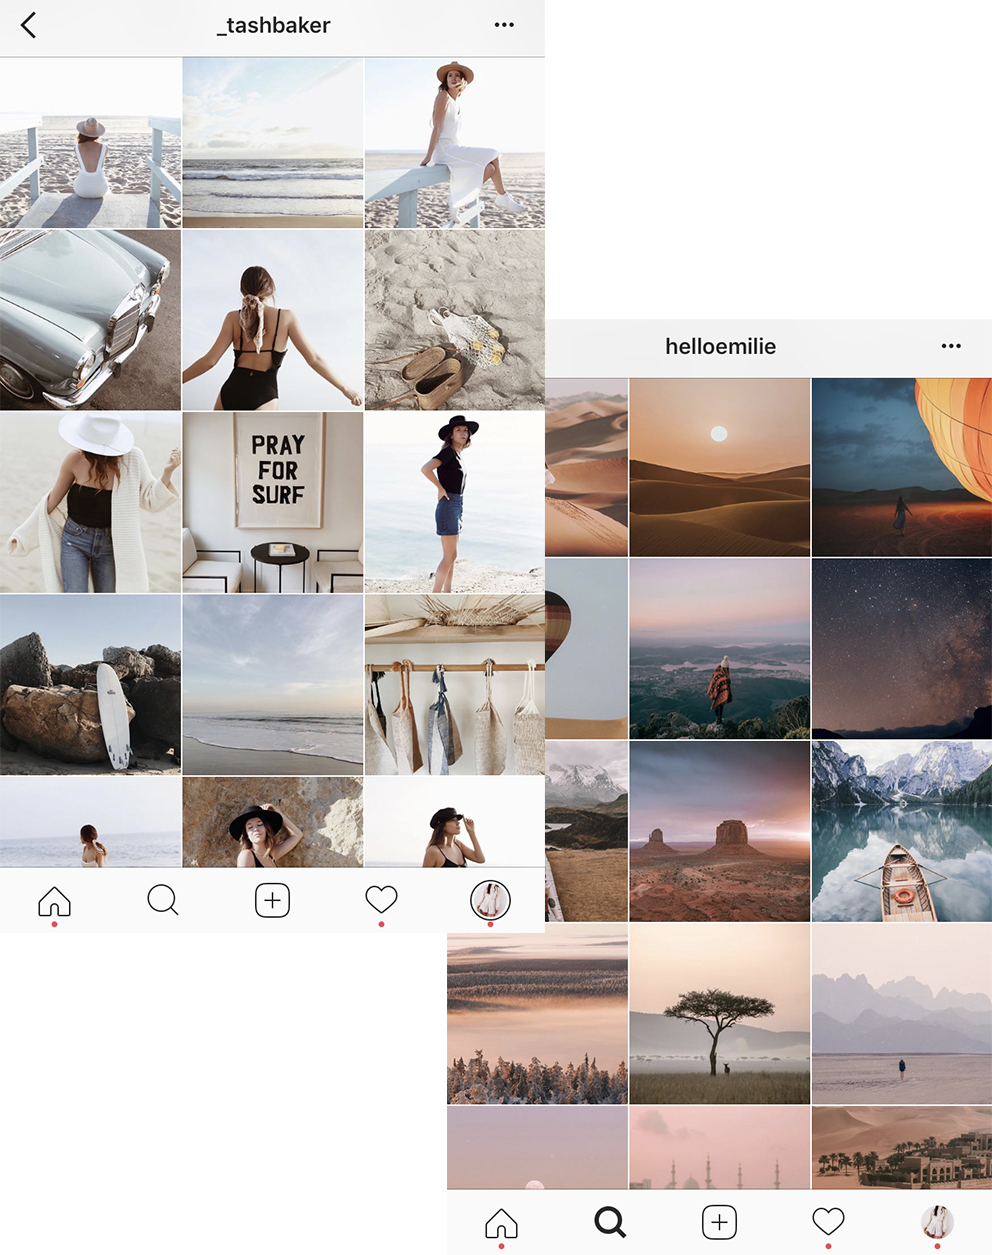 5/ Use Negative Space - Negative space is the space that surrounds your main subject. Increase this space in your photos or alternate negative space images with close ones in your planning app. This gives your feed a fresh, less cluttered look.